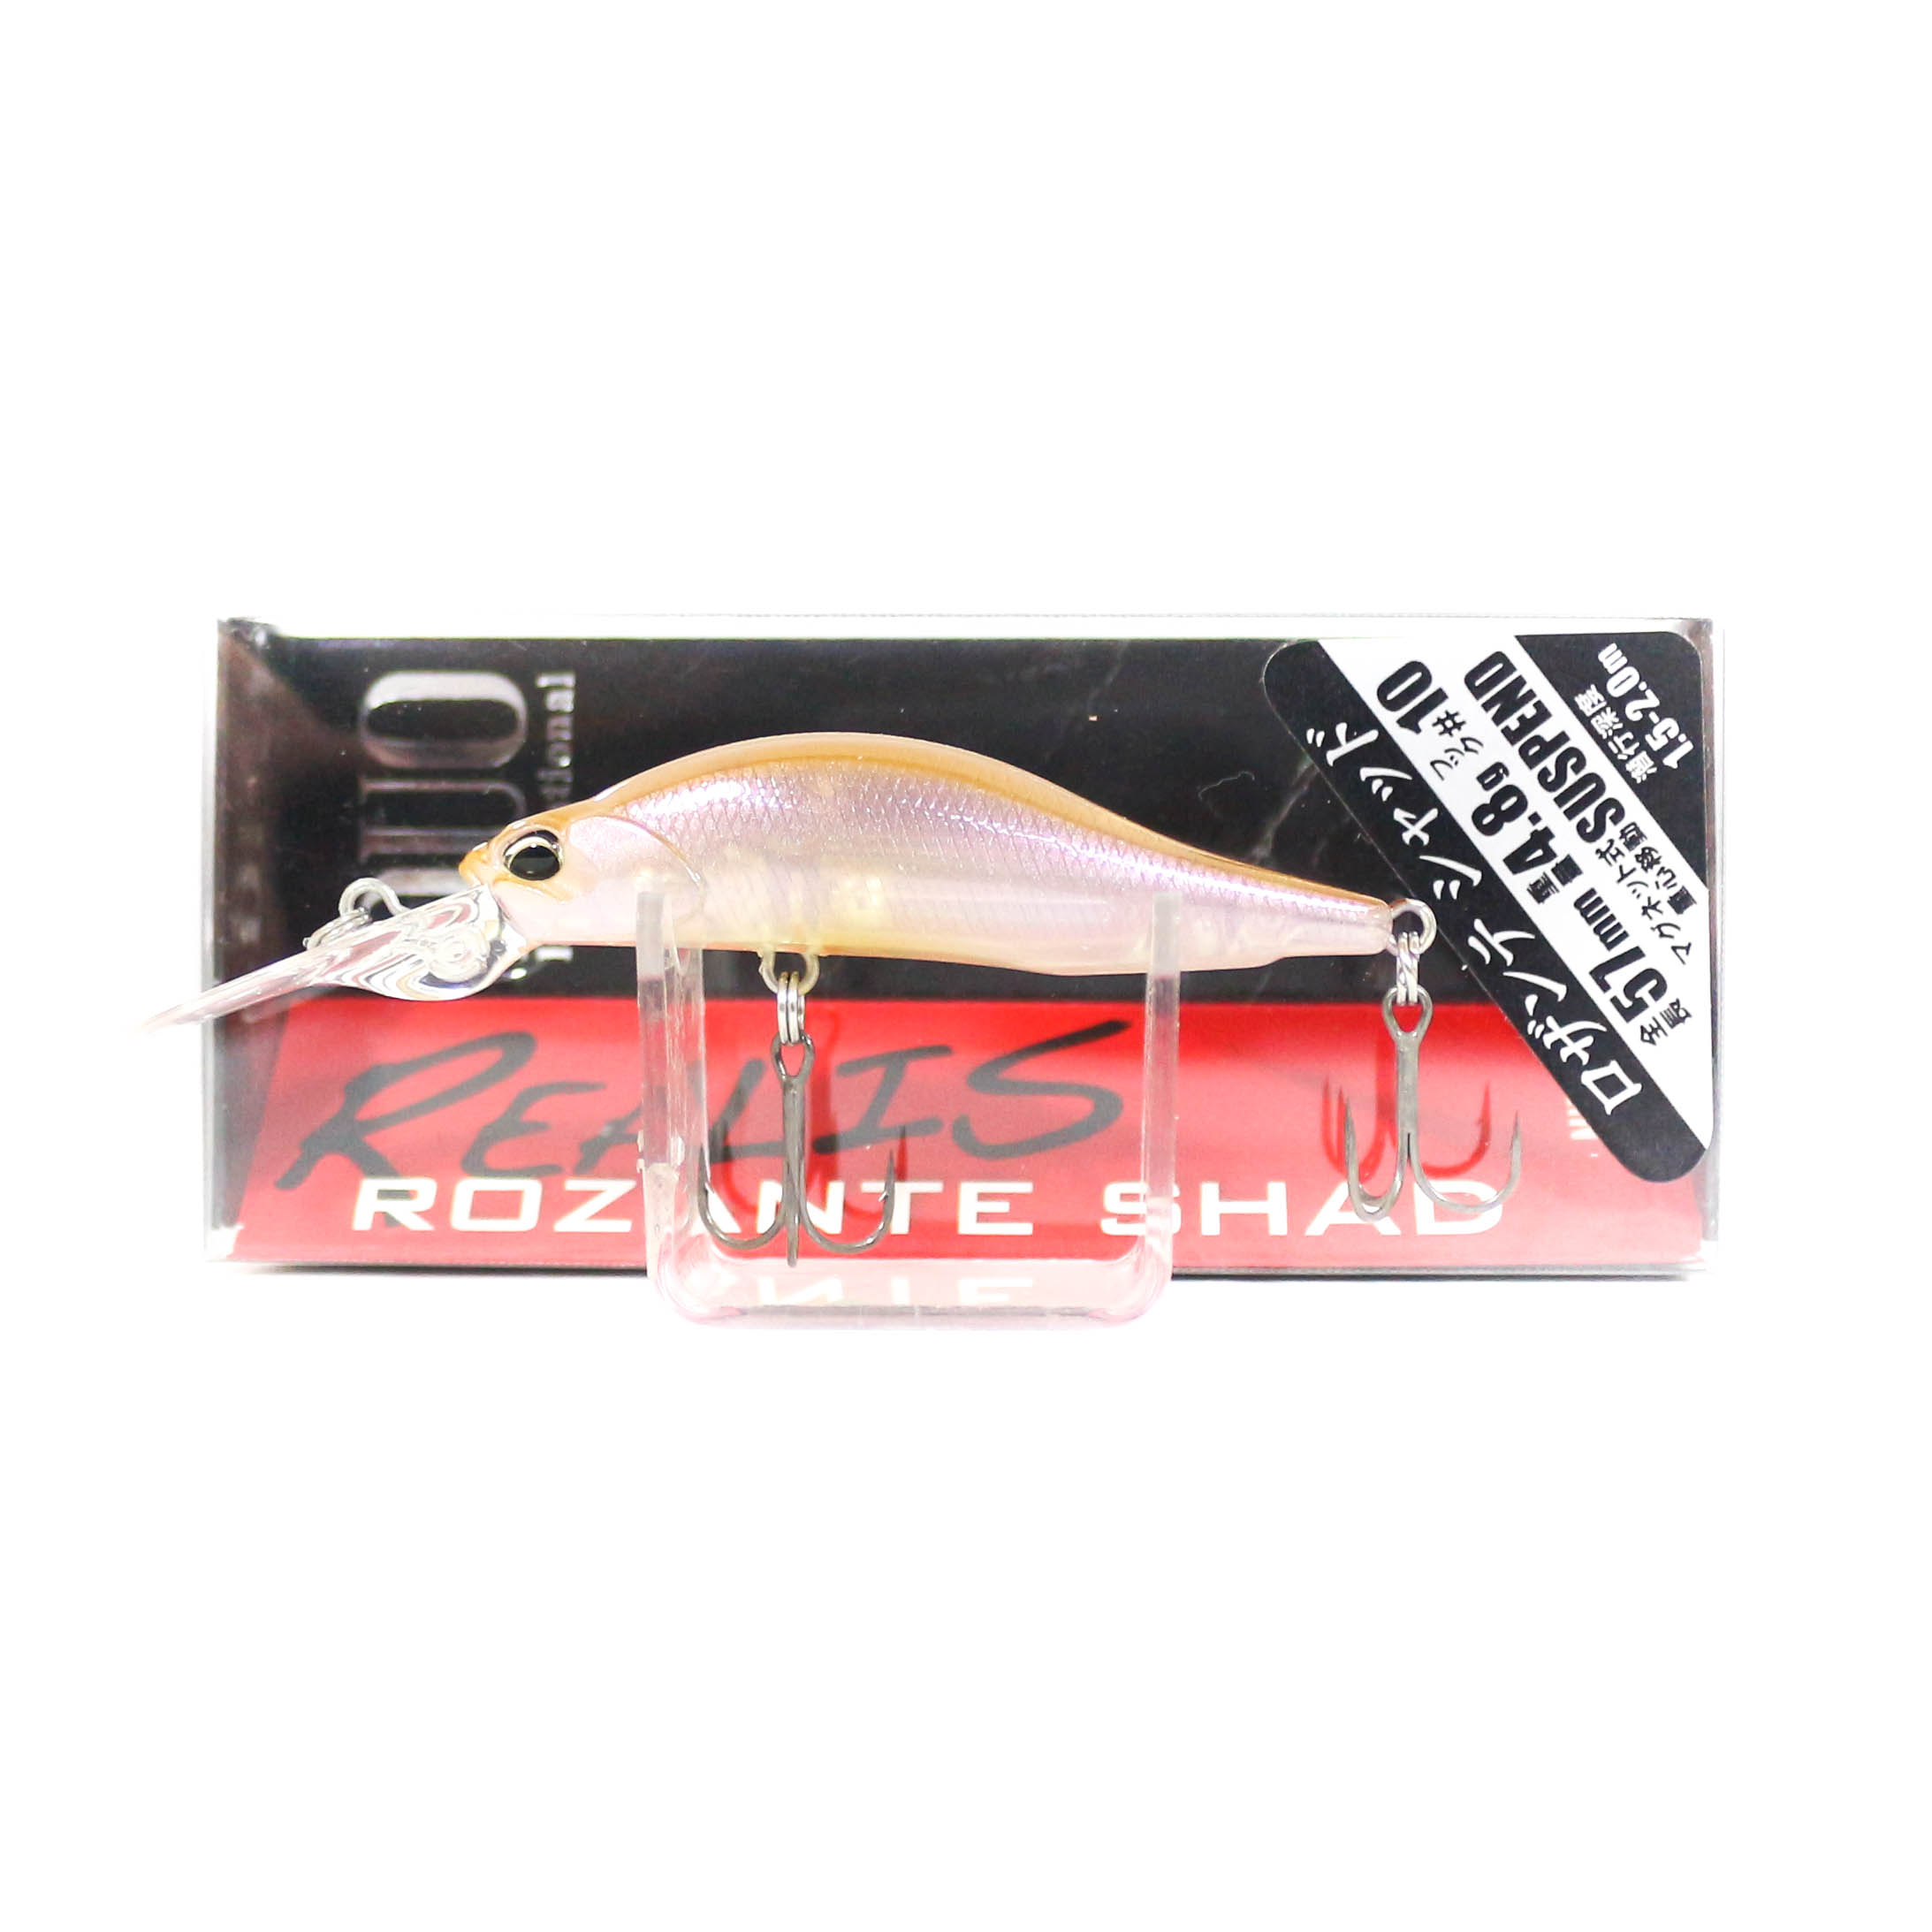 Duo Realis Rozante Shad 57 MR Suspend Lure CCC3260 (9287)